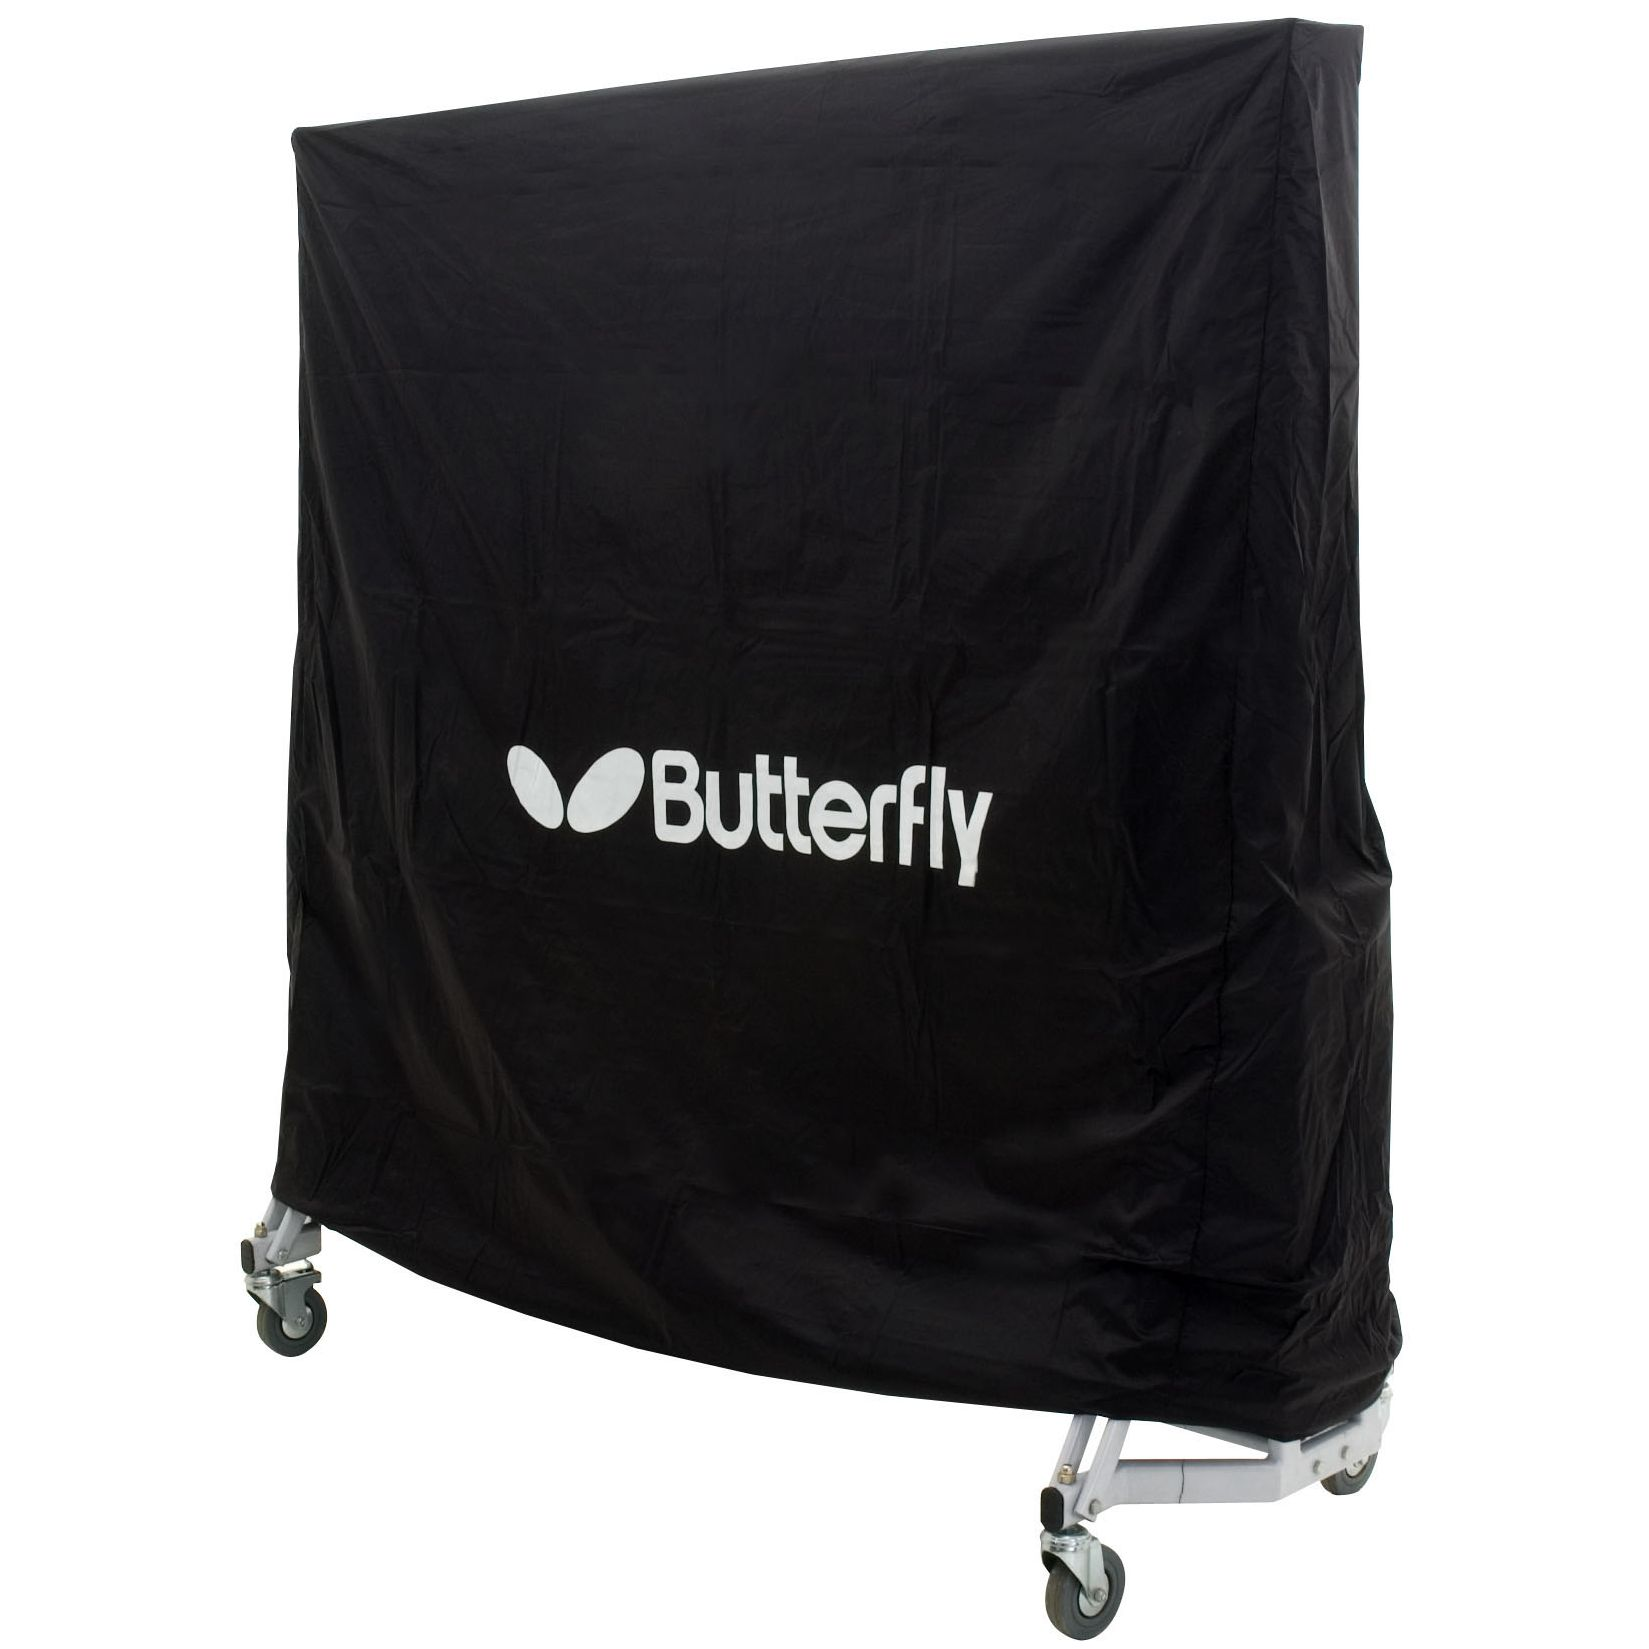 Butterfly Slimline Table Tennis Cover, Black